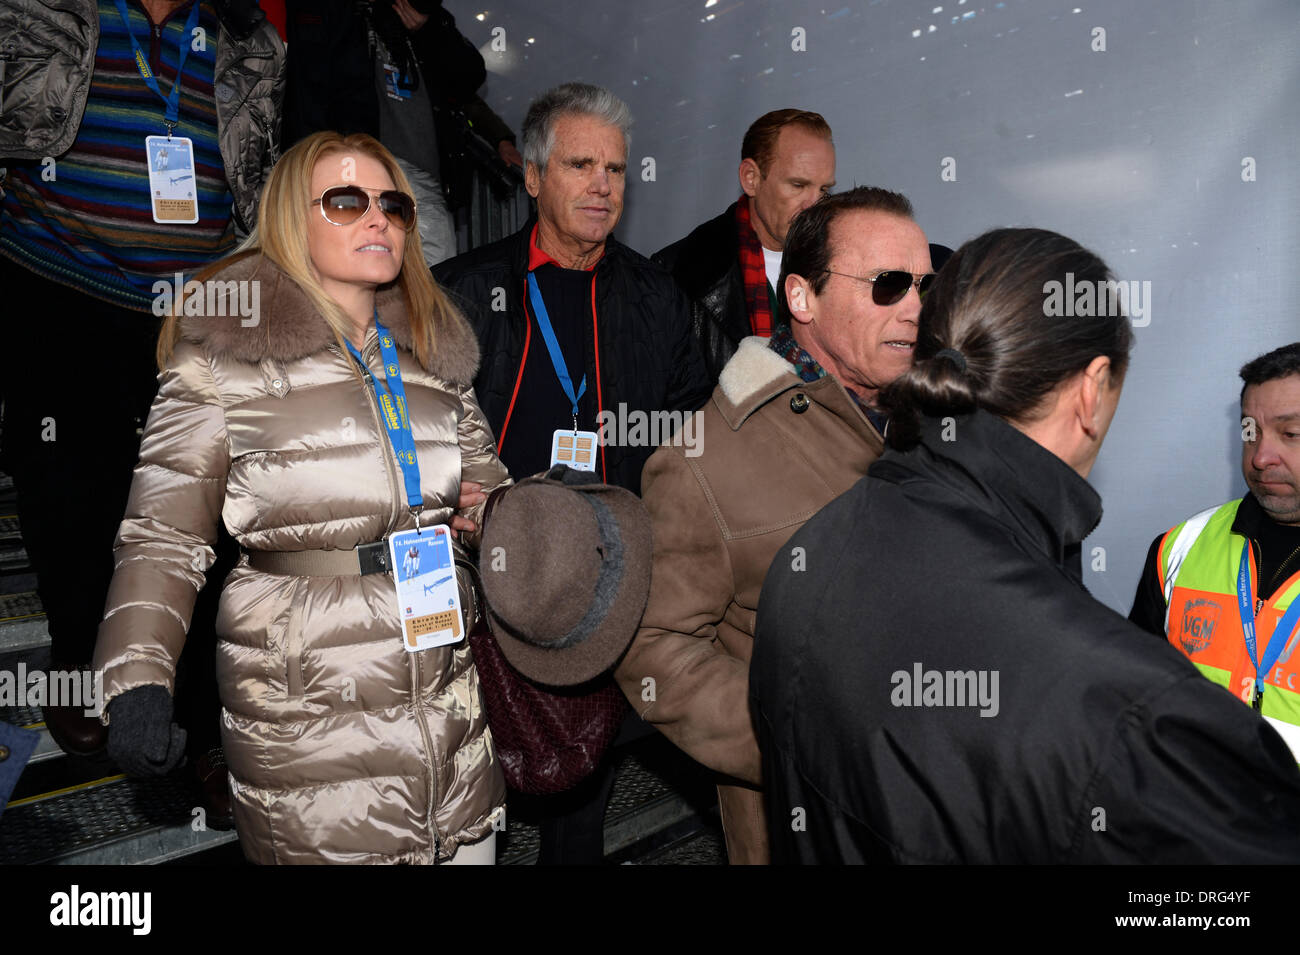 Kitzbuehel, Austria. 25th Jan, 2014. Former US governor and Hollywood actor Arnold Schwarzenegger and his girlfriend Stock Photo